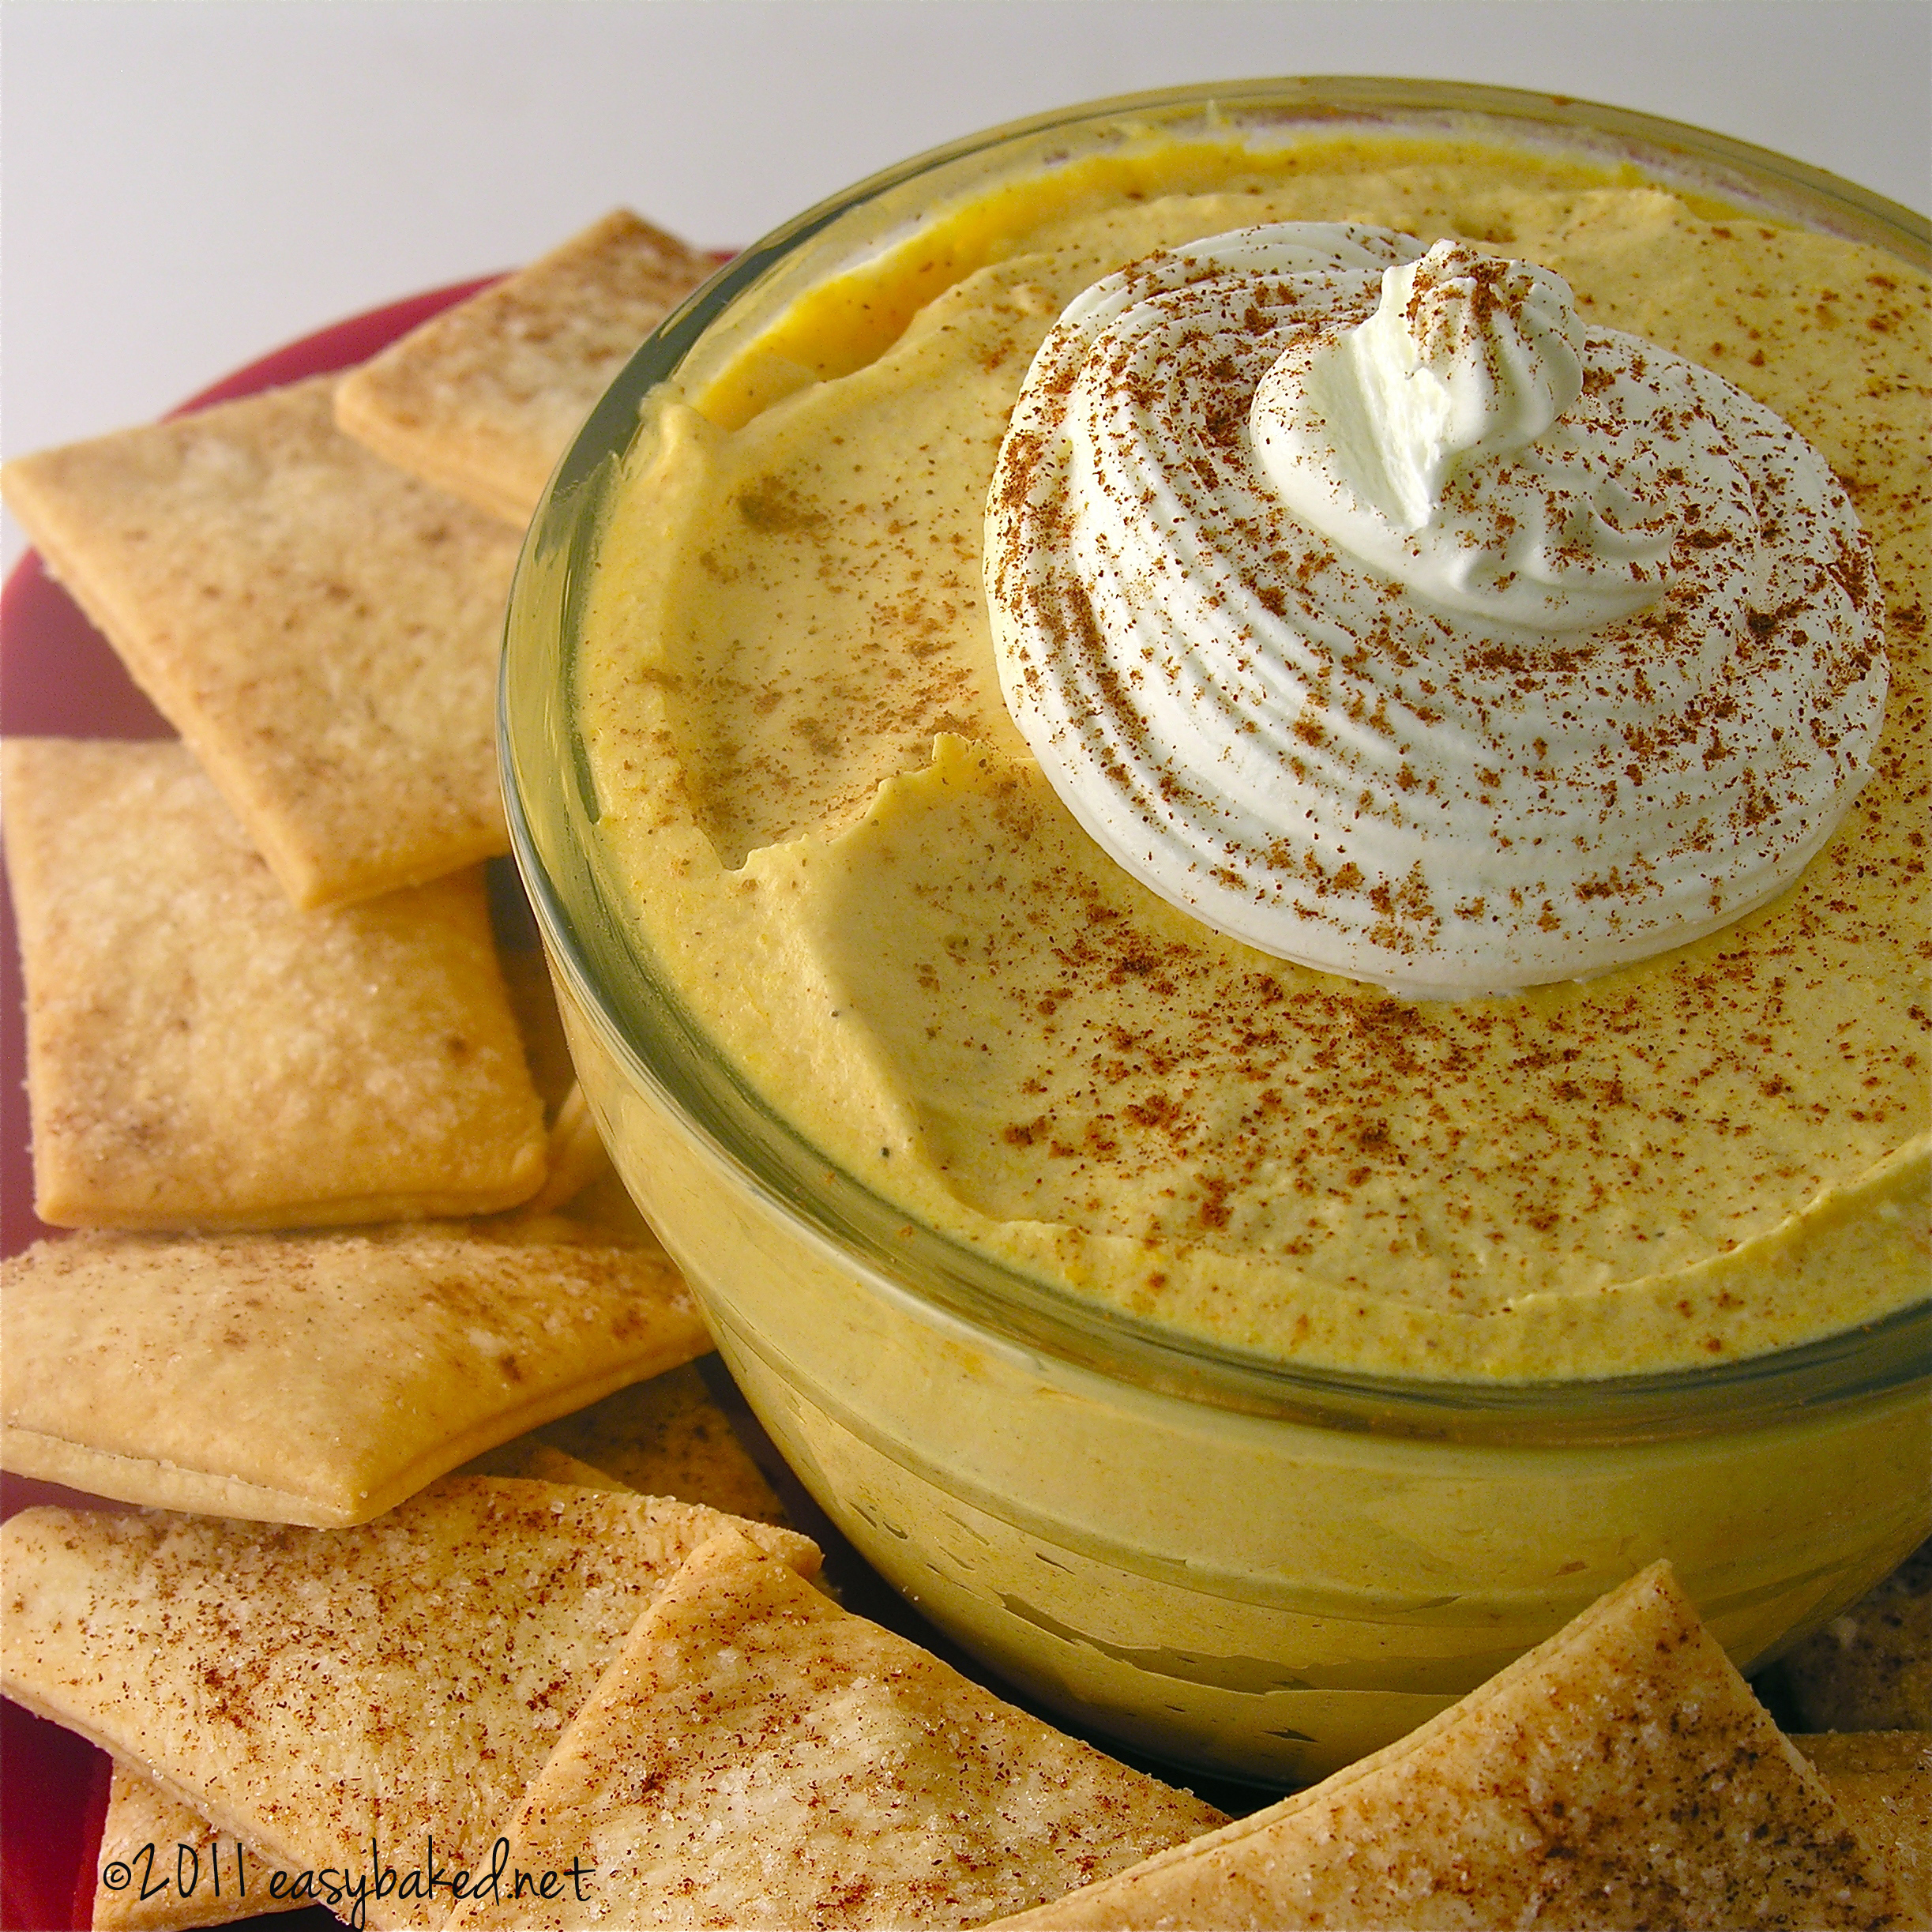 ... pie crust ready to dunk in a creamy pumpkin pie dip! This is the